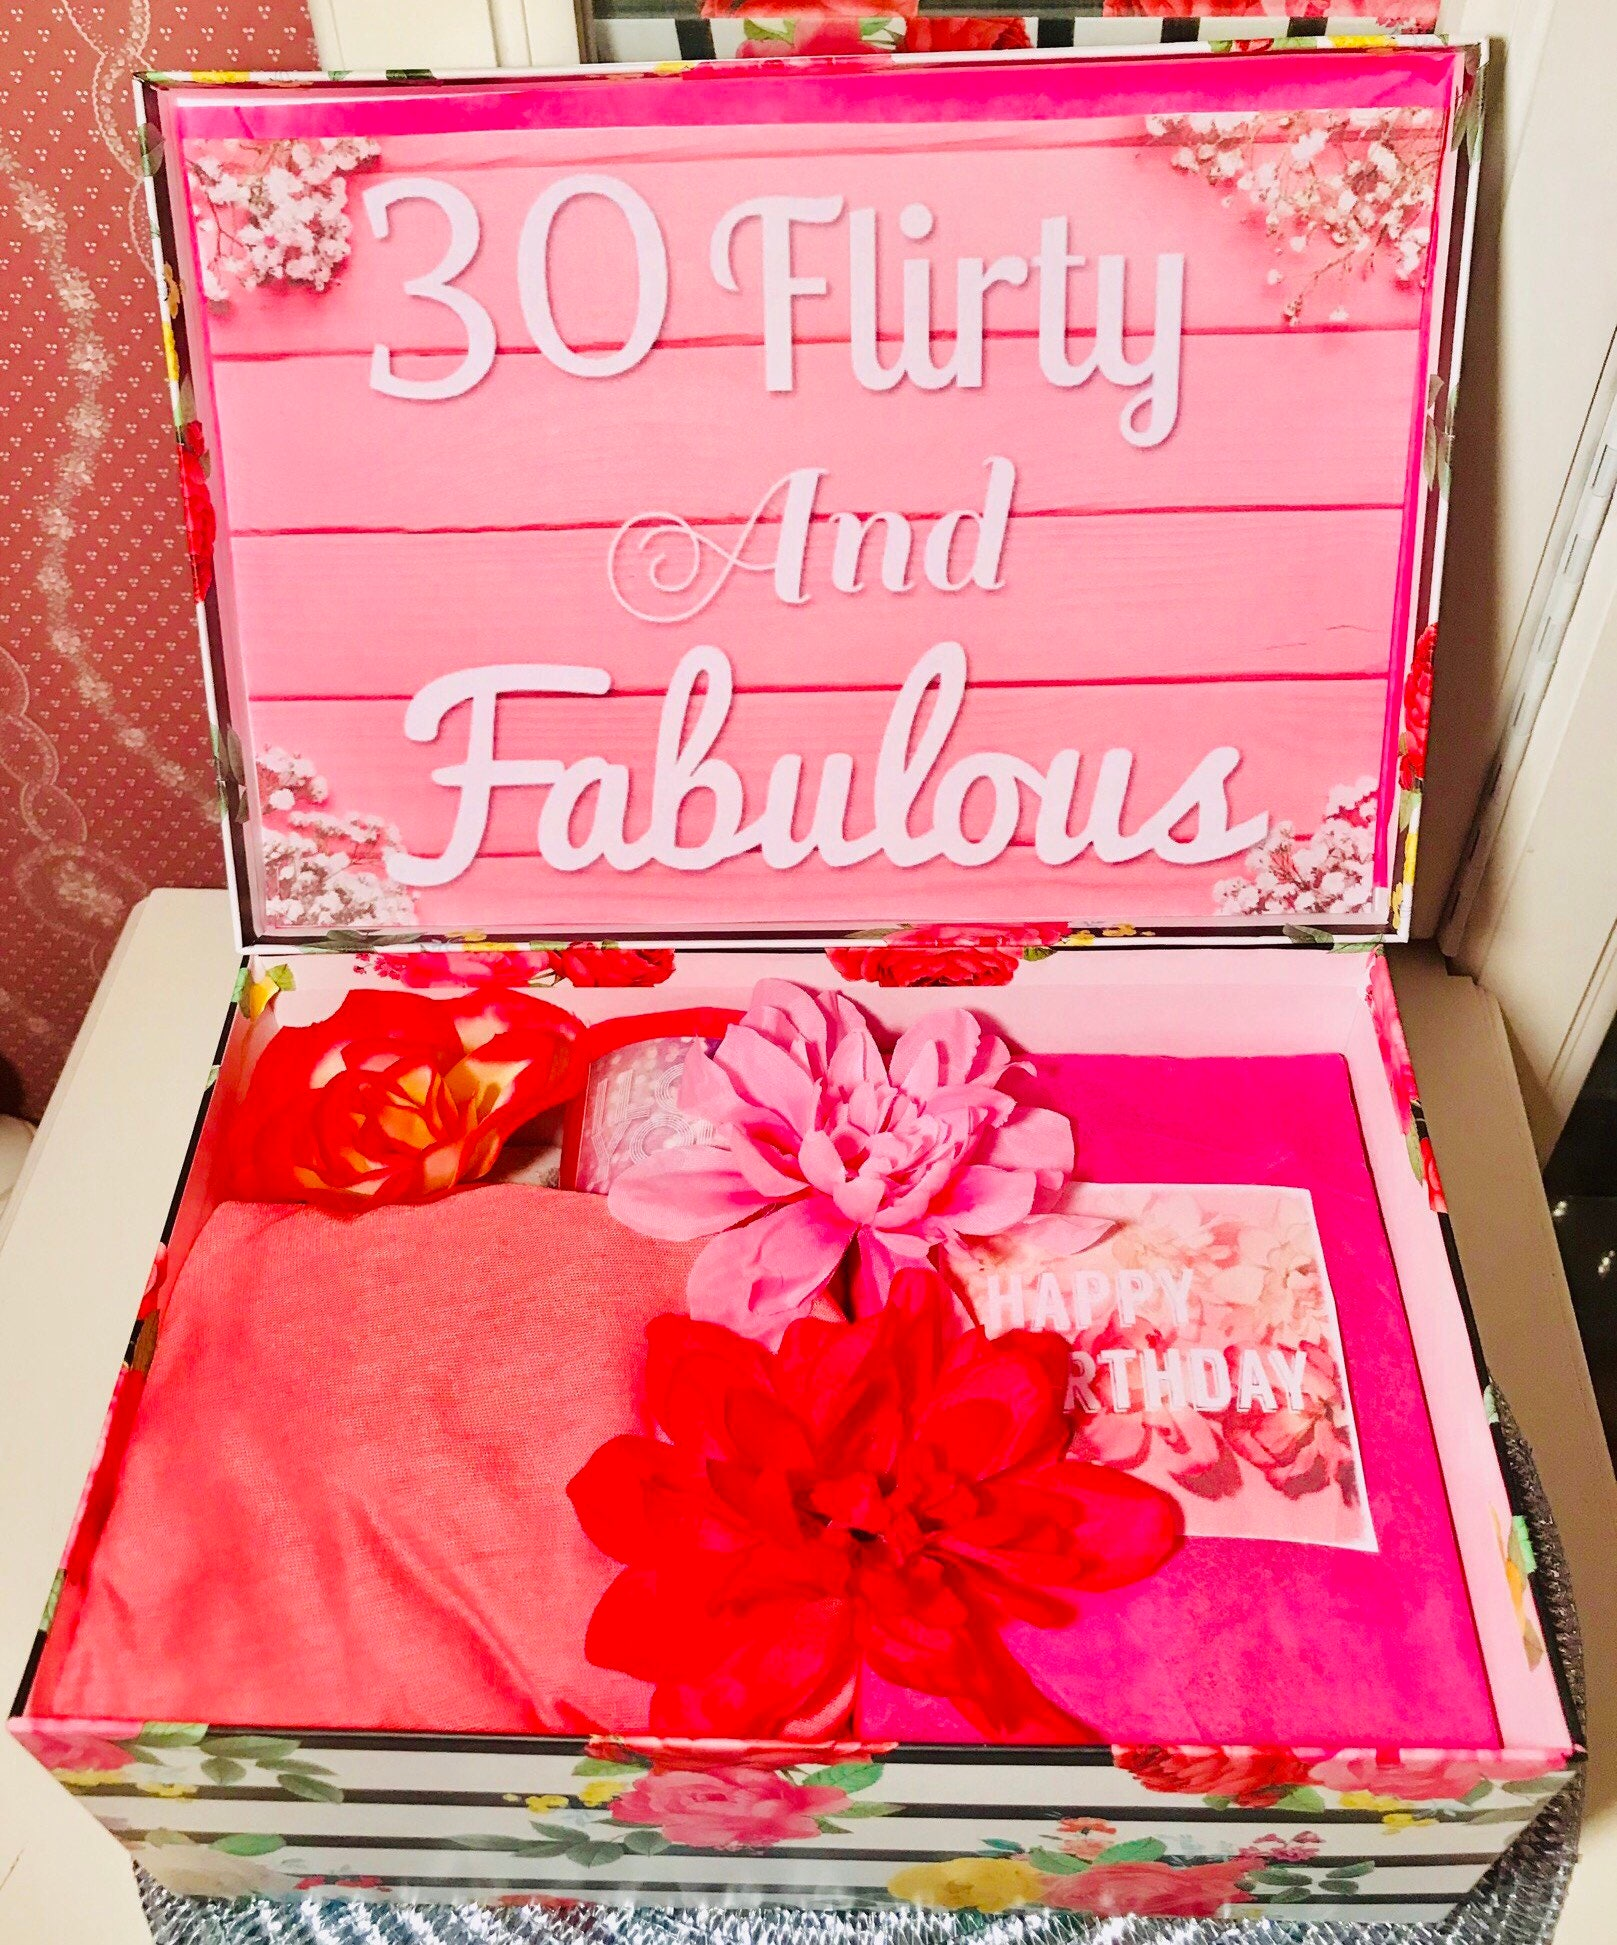 30th Birthday Presents For Your Girlfriend 20 Gift Ideas